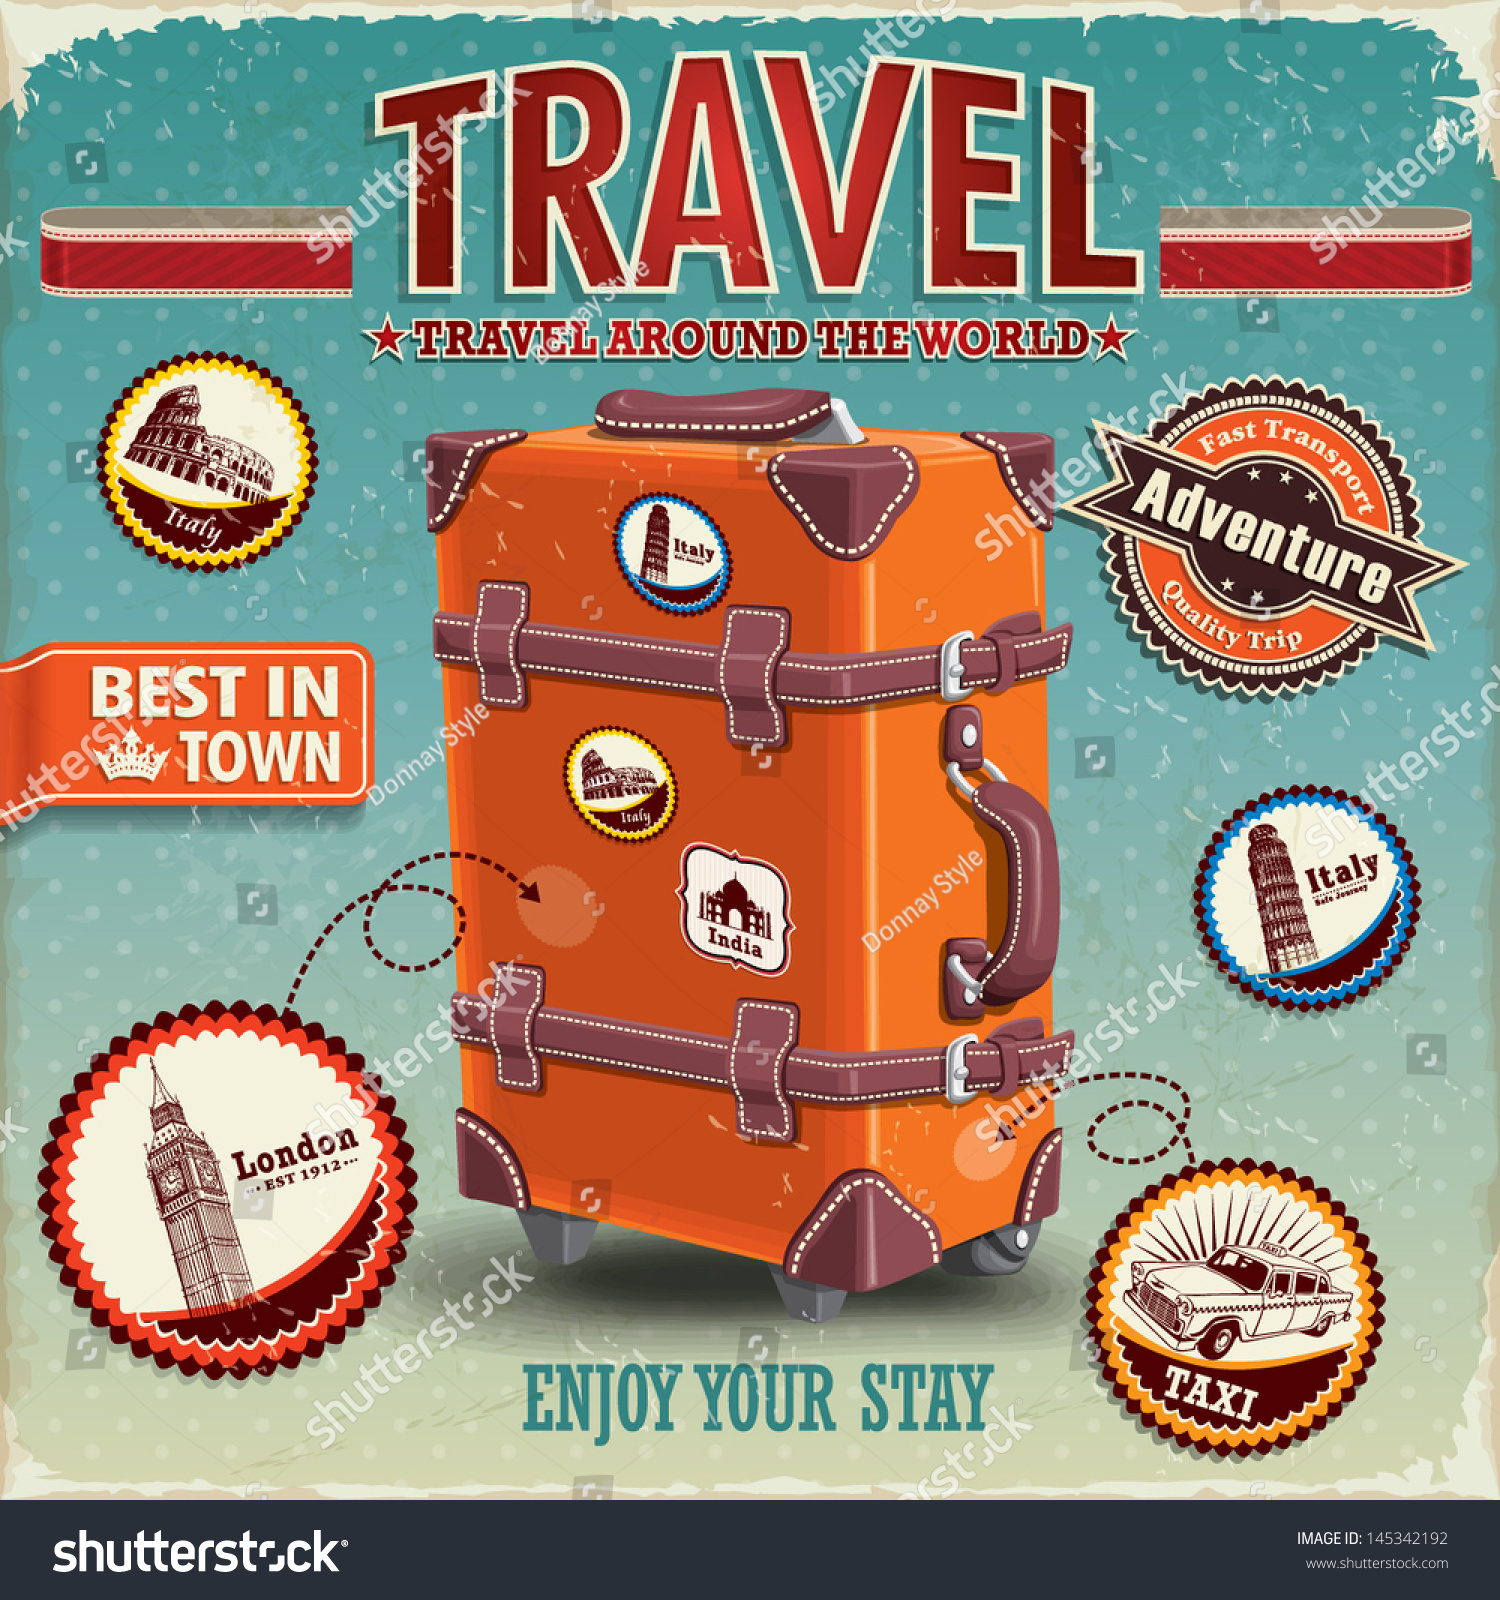 Vintage Travel Trailers: Vintage Travel Luggage Poster Labels Stock Vector